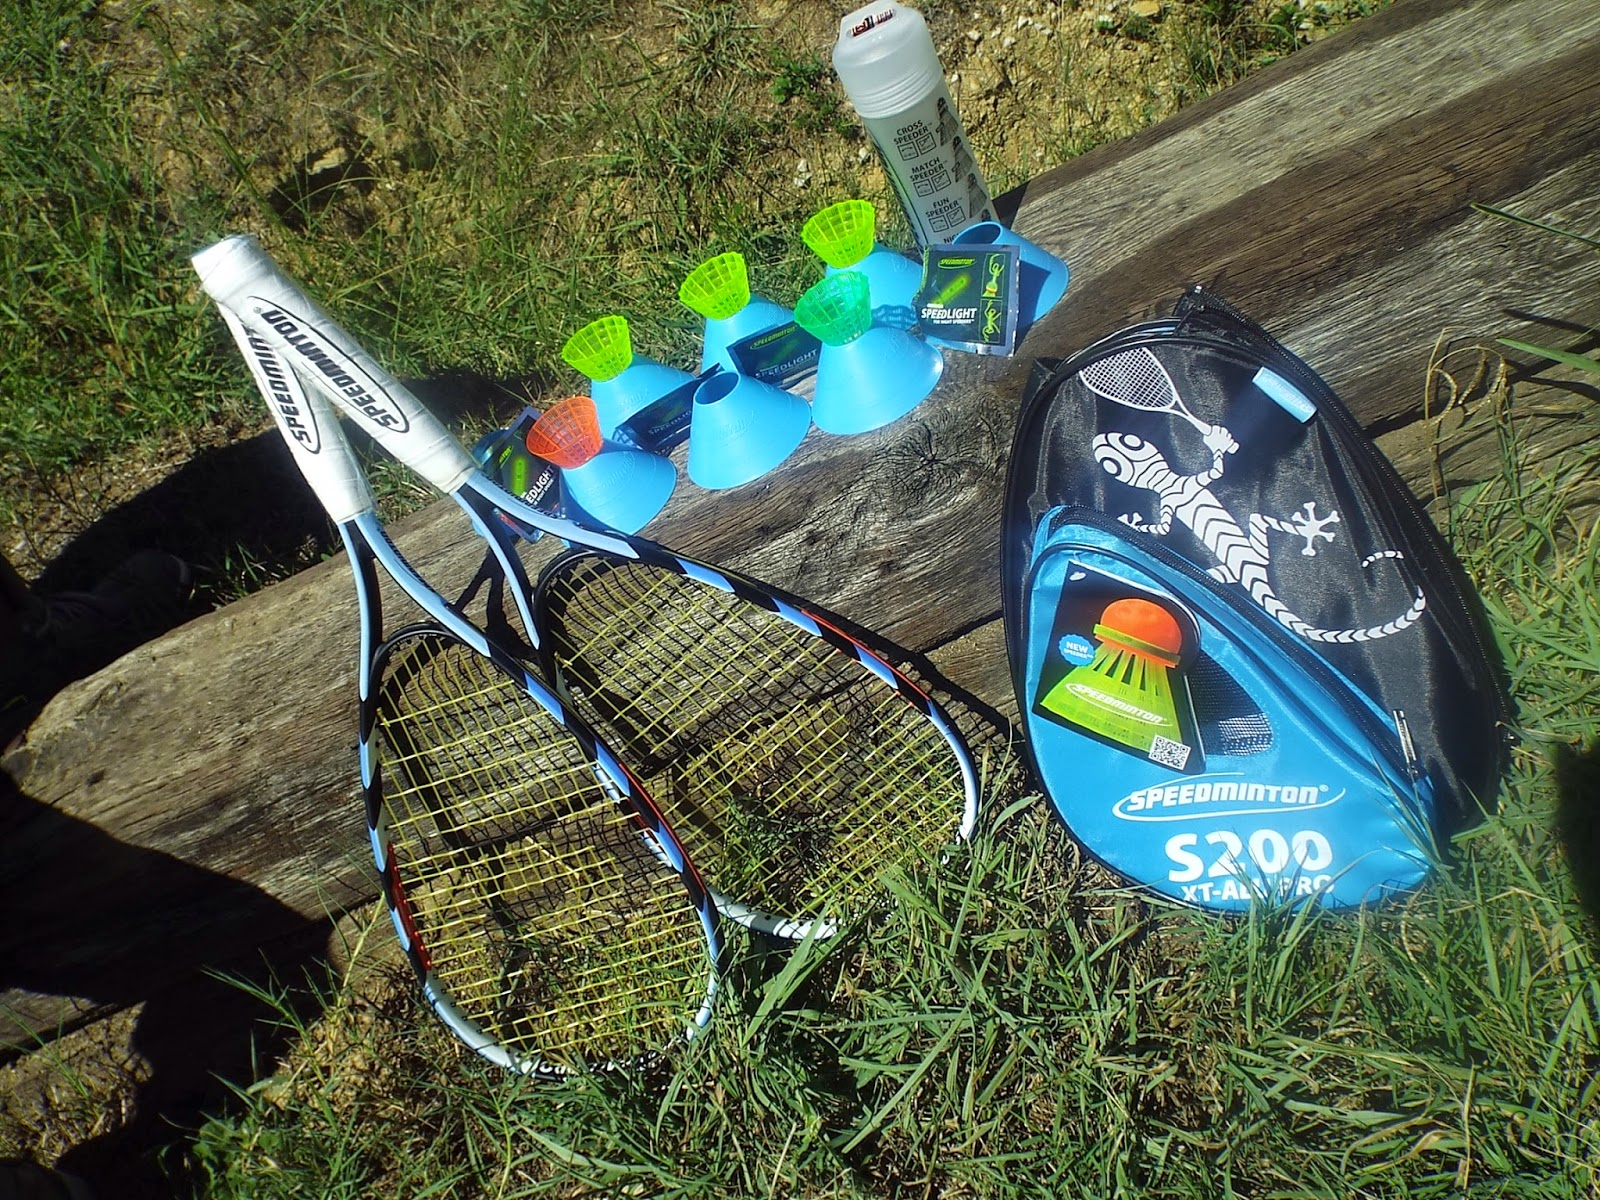 The complete Speedminton S200 set